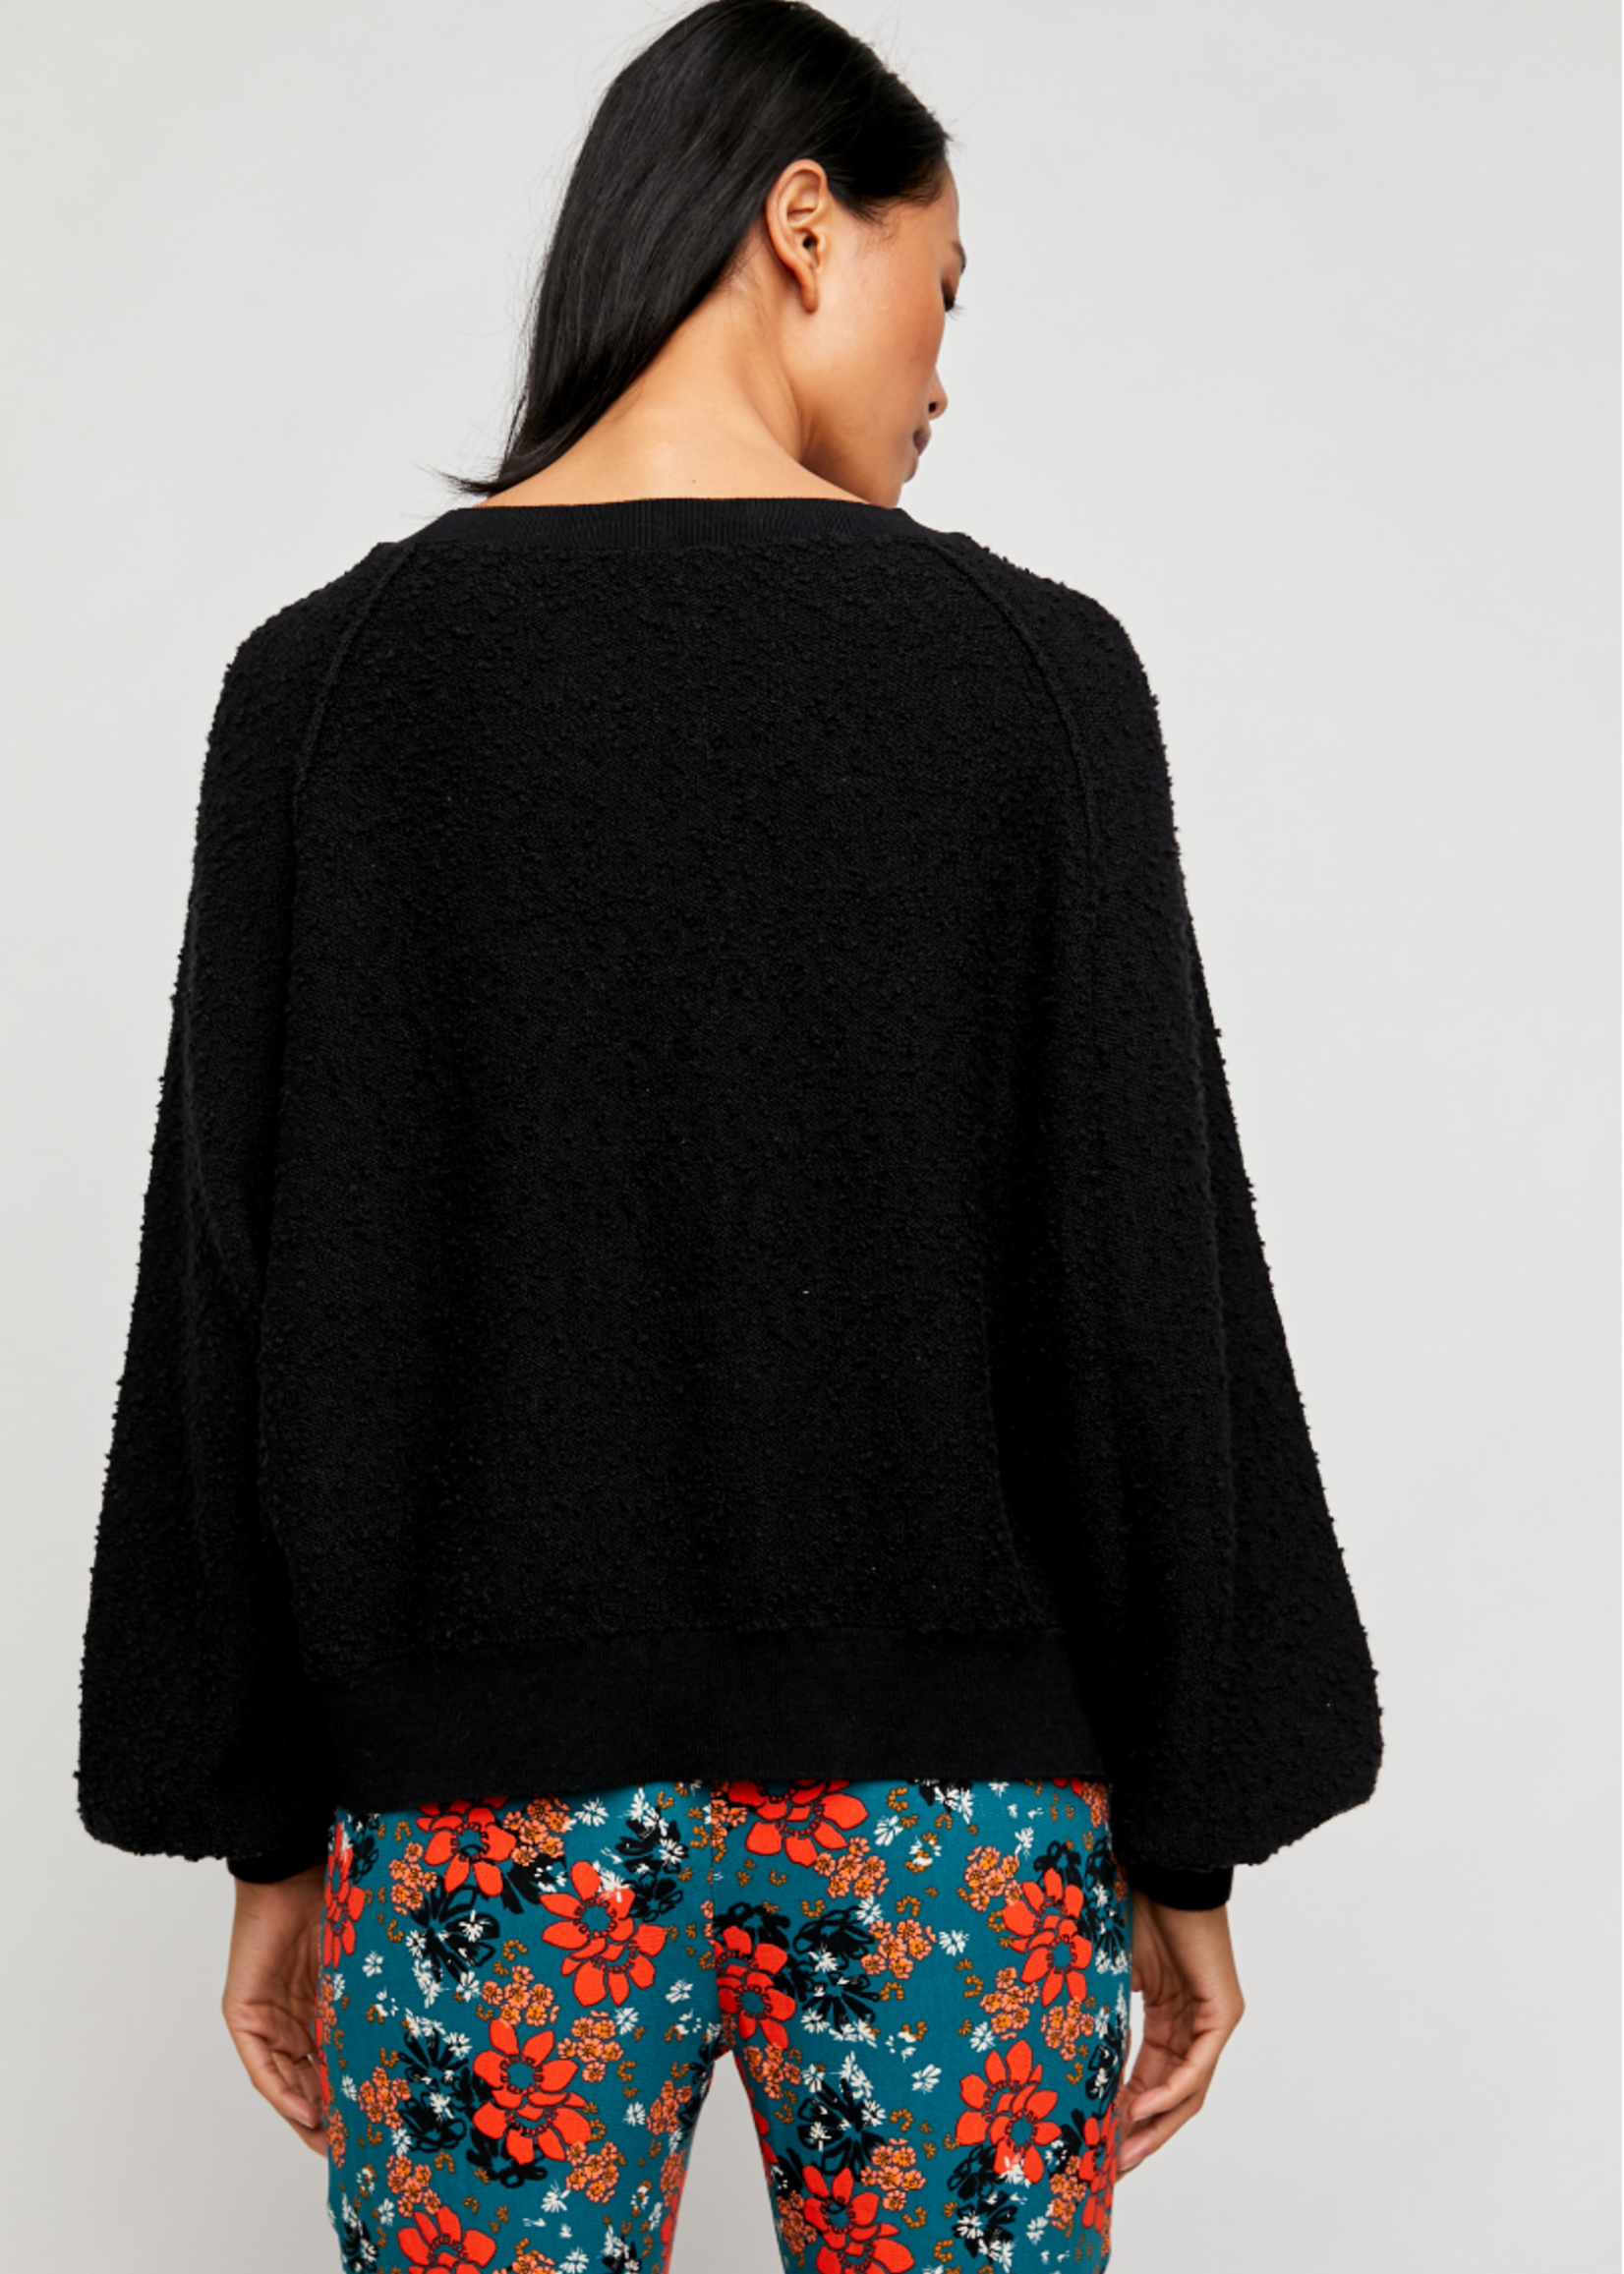 Free People Found My Friend Pullover - Black